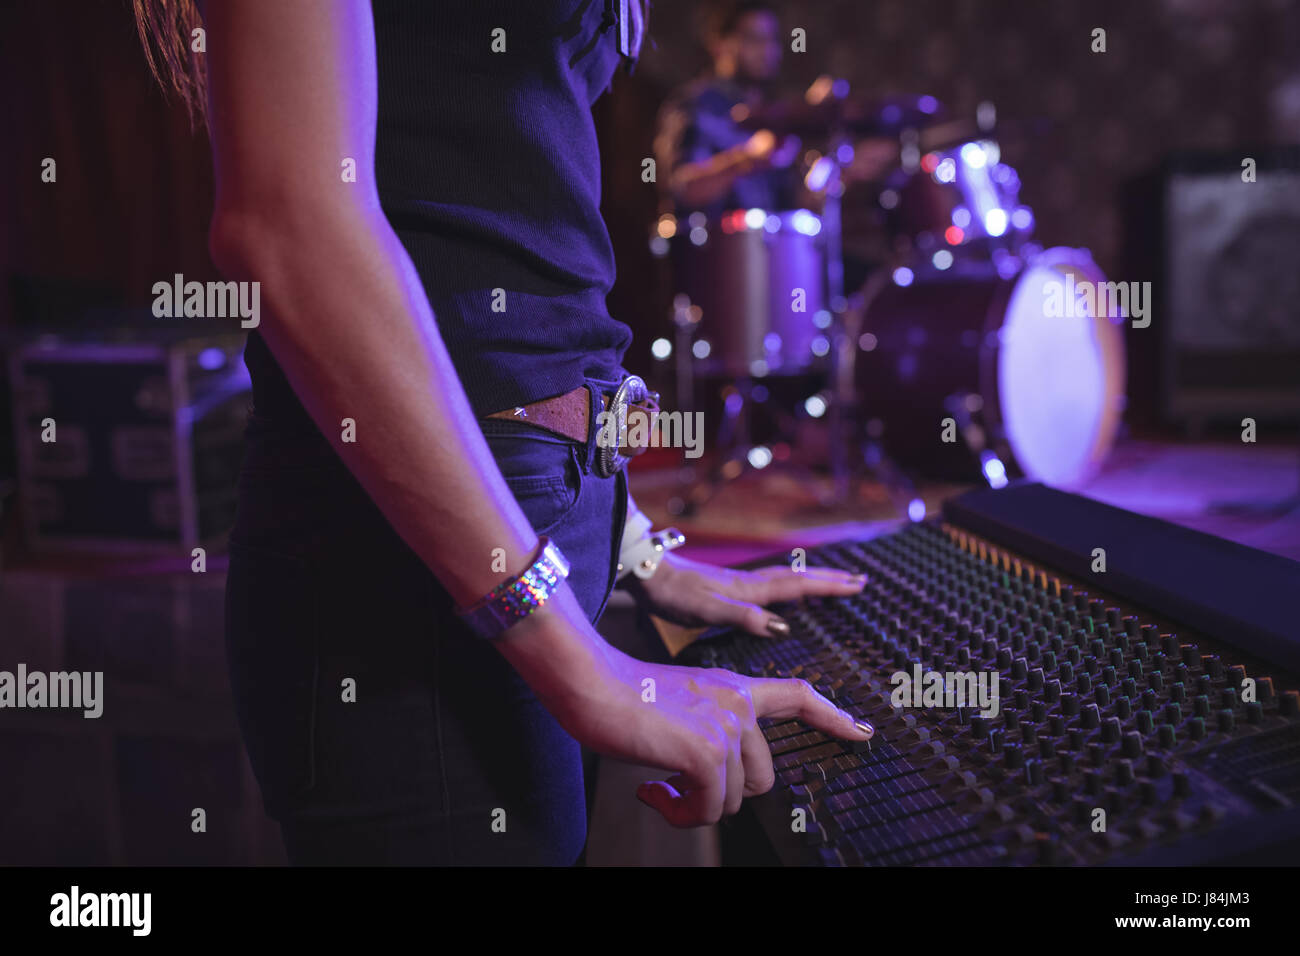 Mid section of female musician operating sound mixer in nightclub - Stock Image